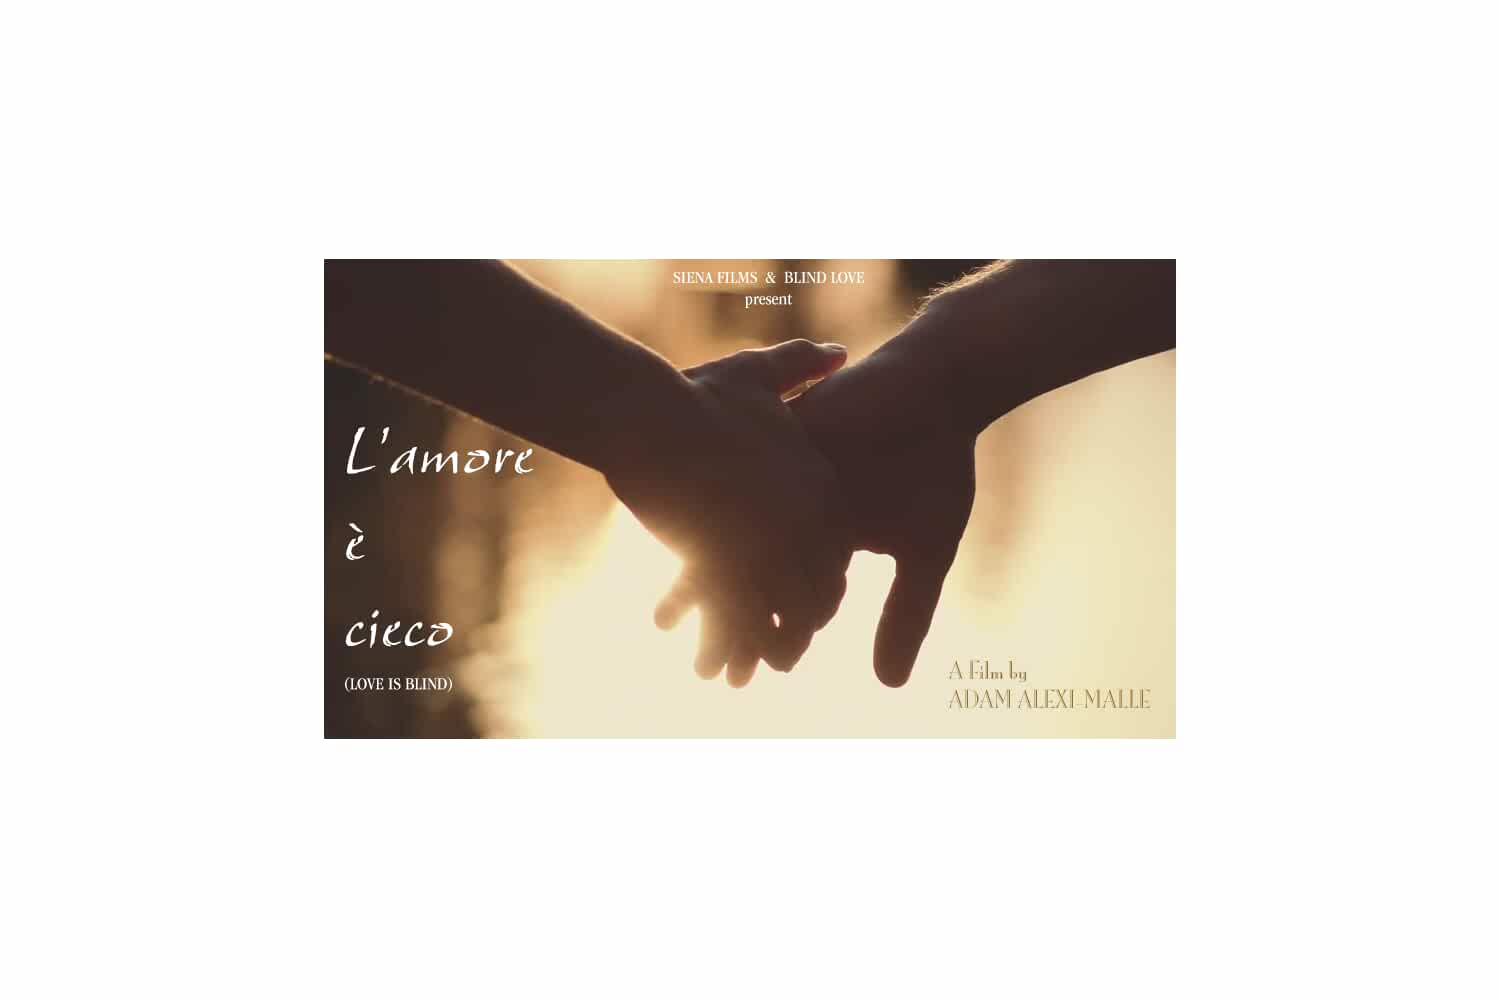 L'amore  cieco [Love is Blind] (2019)